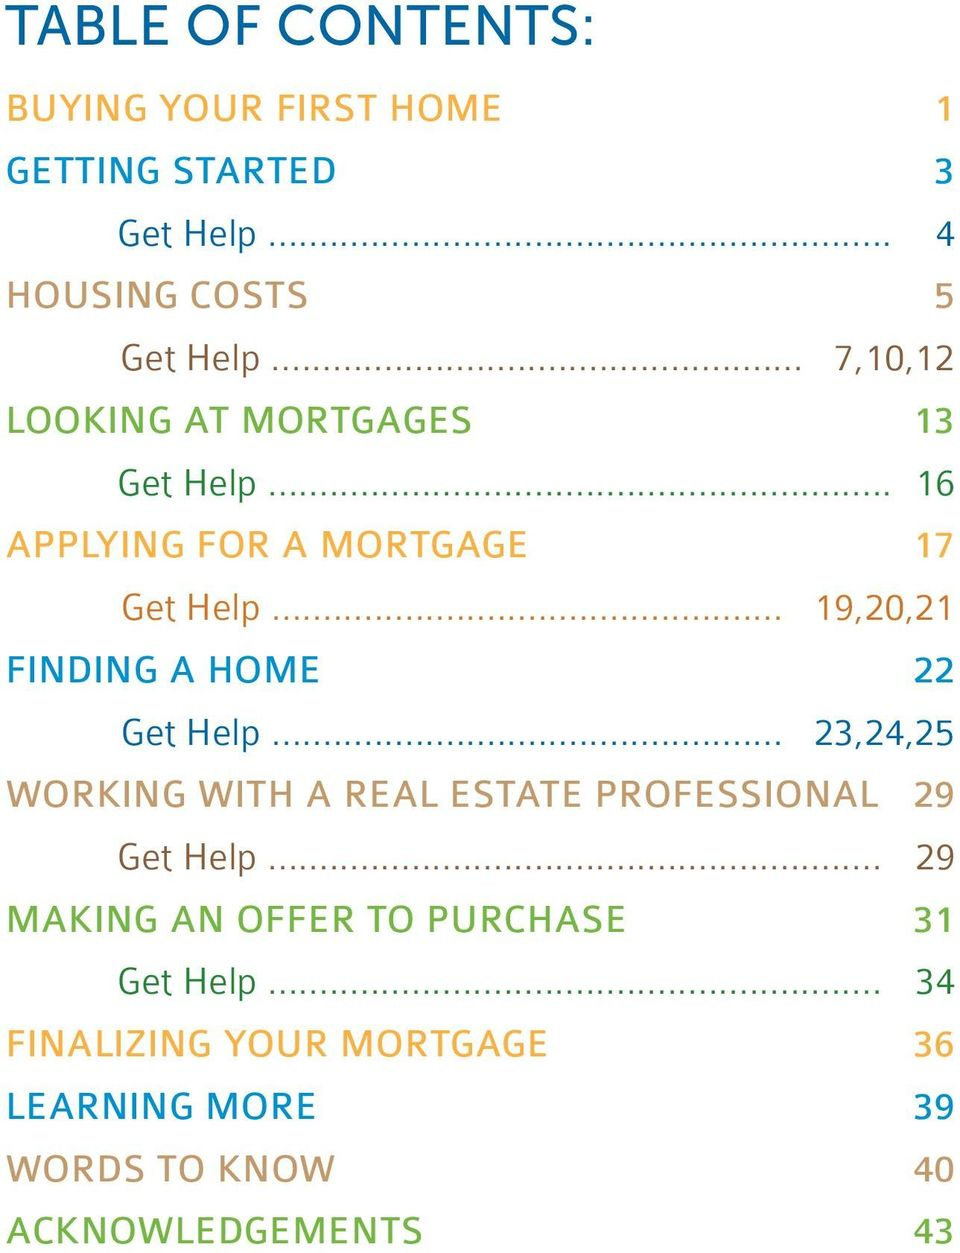 .. 19,20,21 FINDING A HOME 22 Get Help... 23,24,25 WORKING WITH A REAL ESTATE PROFESSIONAL 29 Get Help.